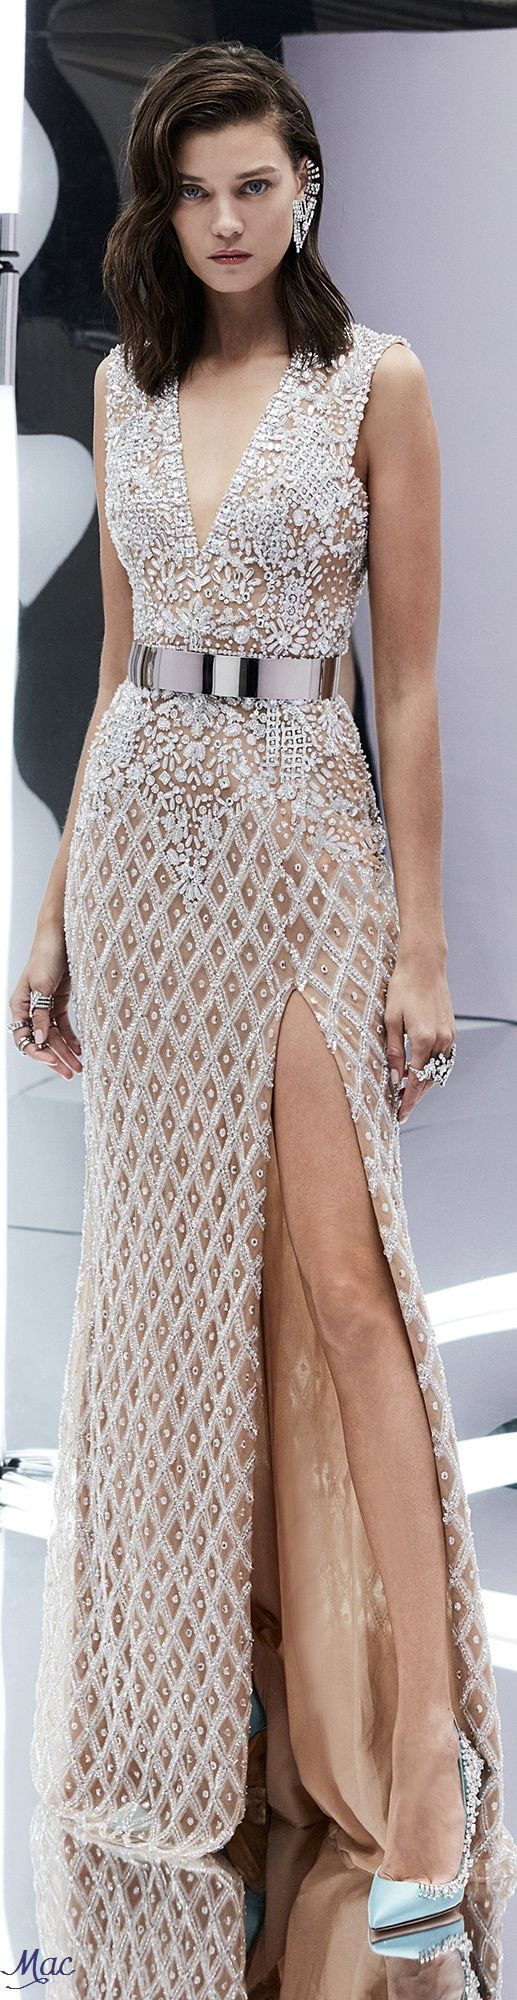 -Spring 2017 Ready-to-Wear Zuhair Murad.                                                                                                                                                                                 More